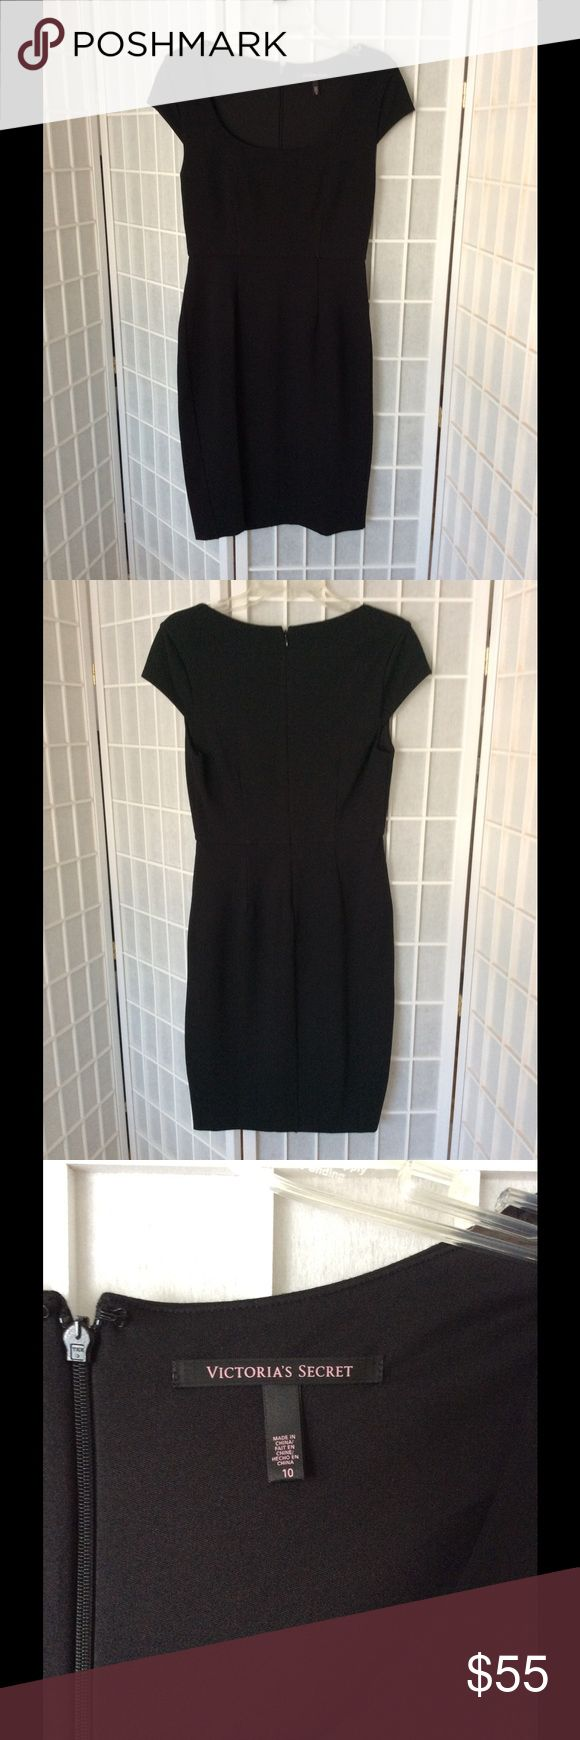 Victoria's Secret Black dress Smart, classy and sophisticated VS black back zip dress with cap sleeves. Scoop neck. Looks beautiful on the body. Machine wash cold. Never worn. Chest: 15, waist: 13 1/2, cb length: 37. I also have a striped version listed. PINK Victoria's Secret Dresses